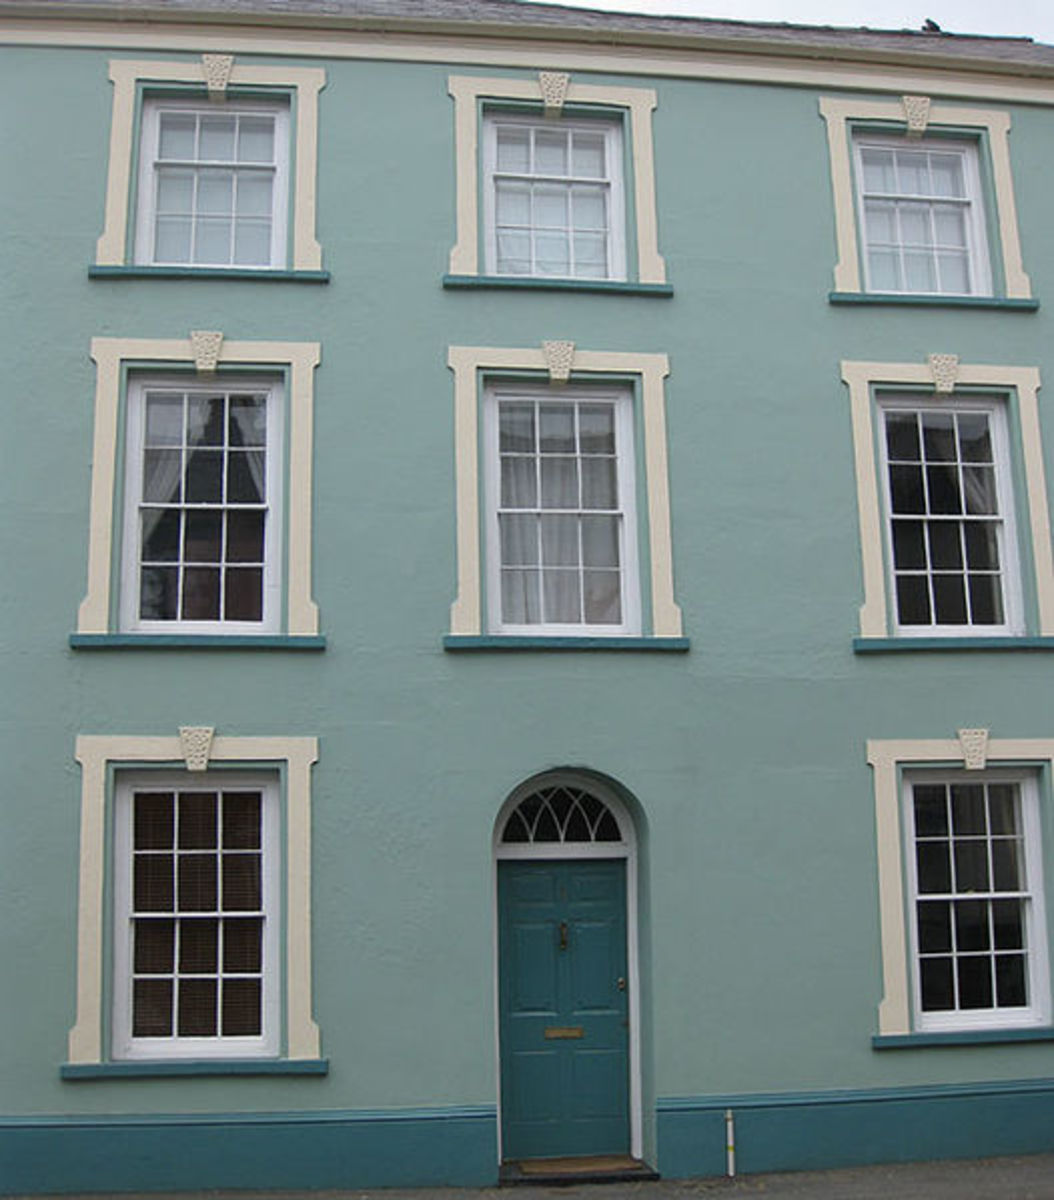 These elegant sash windows are now synonymous with the architecture of Georgian England. However, they were first developed in the mid 17th century and first used in Inigo Jones Banqueting House.